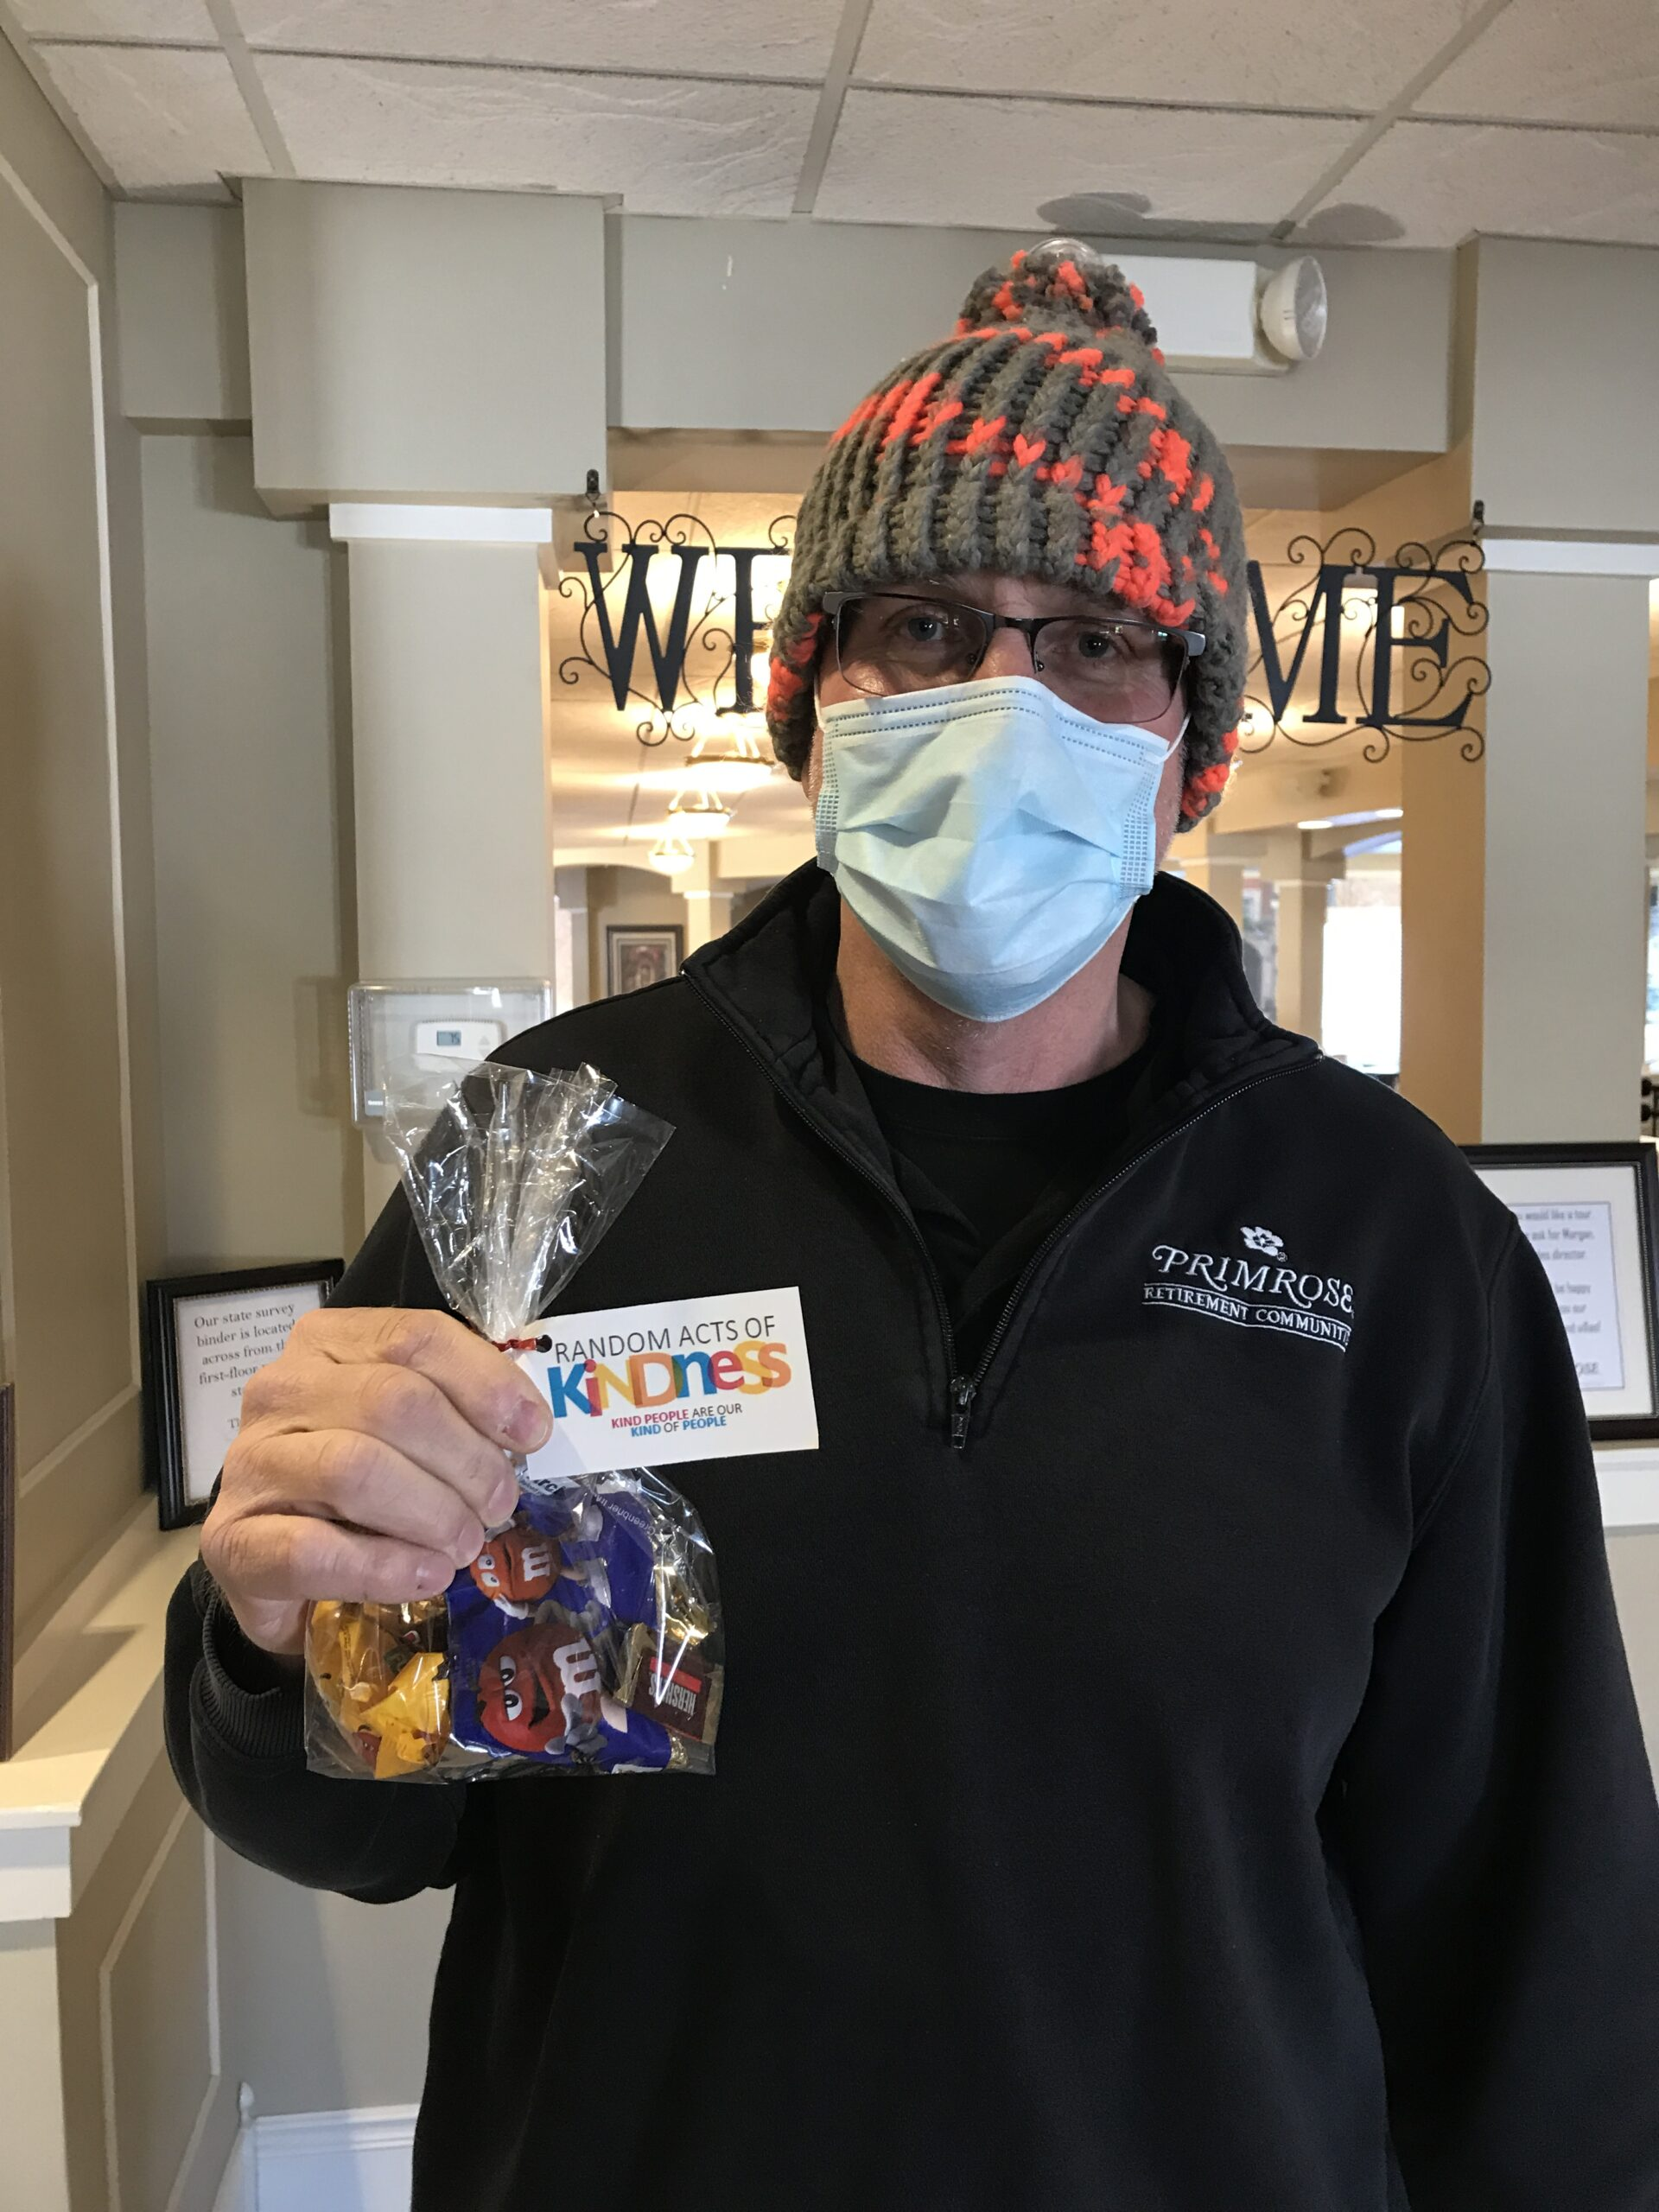 David posing with his handmade hat made by the busy bees and with his goody bag full of candy and gift card for Random Act of Kindness Day